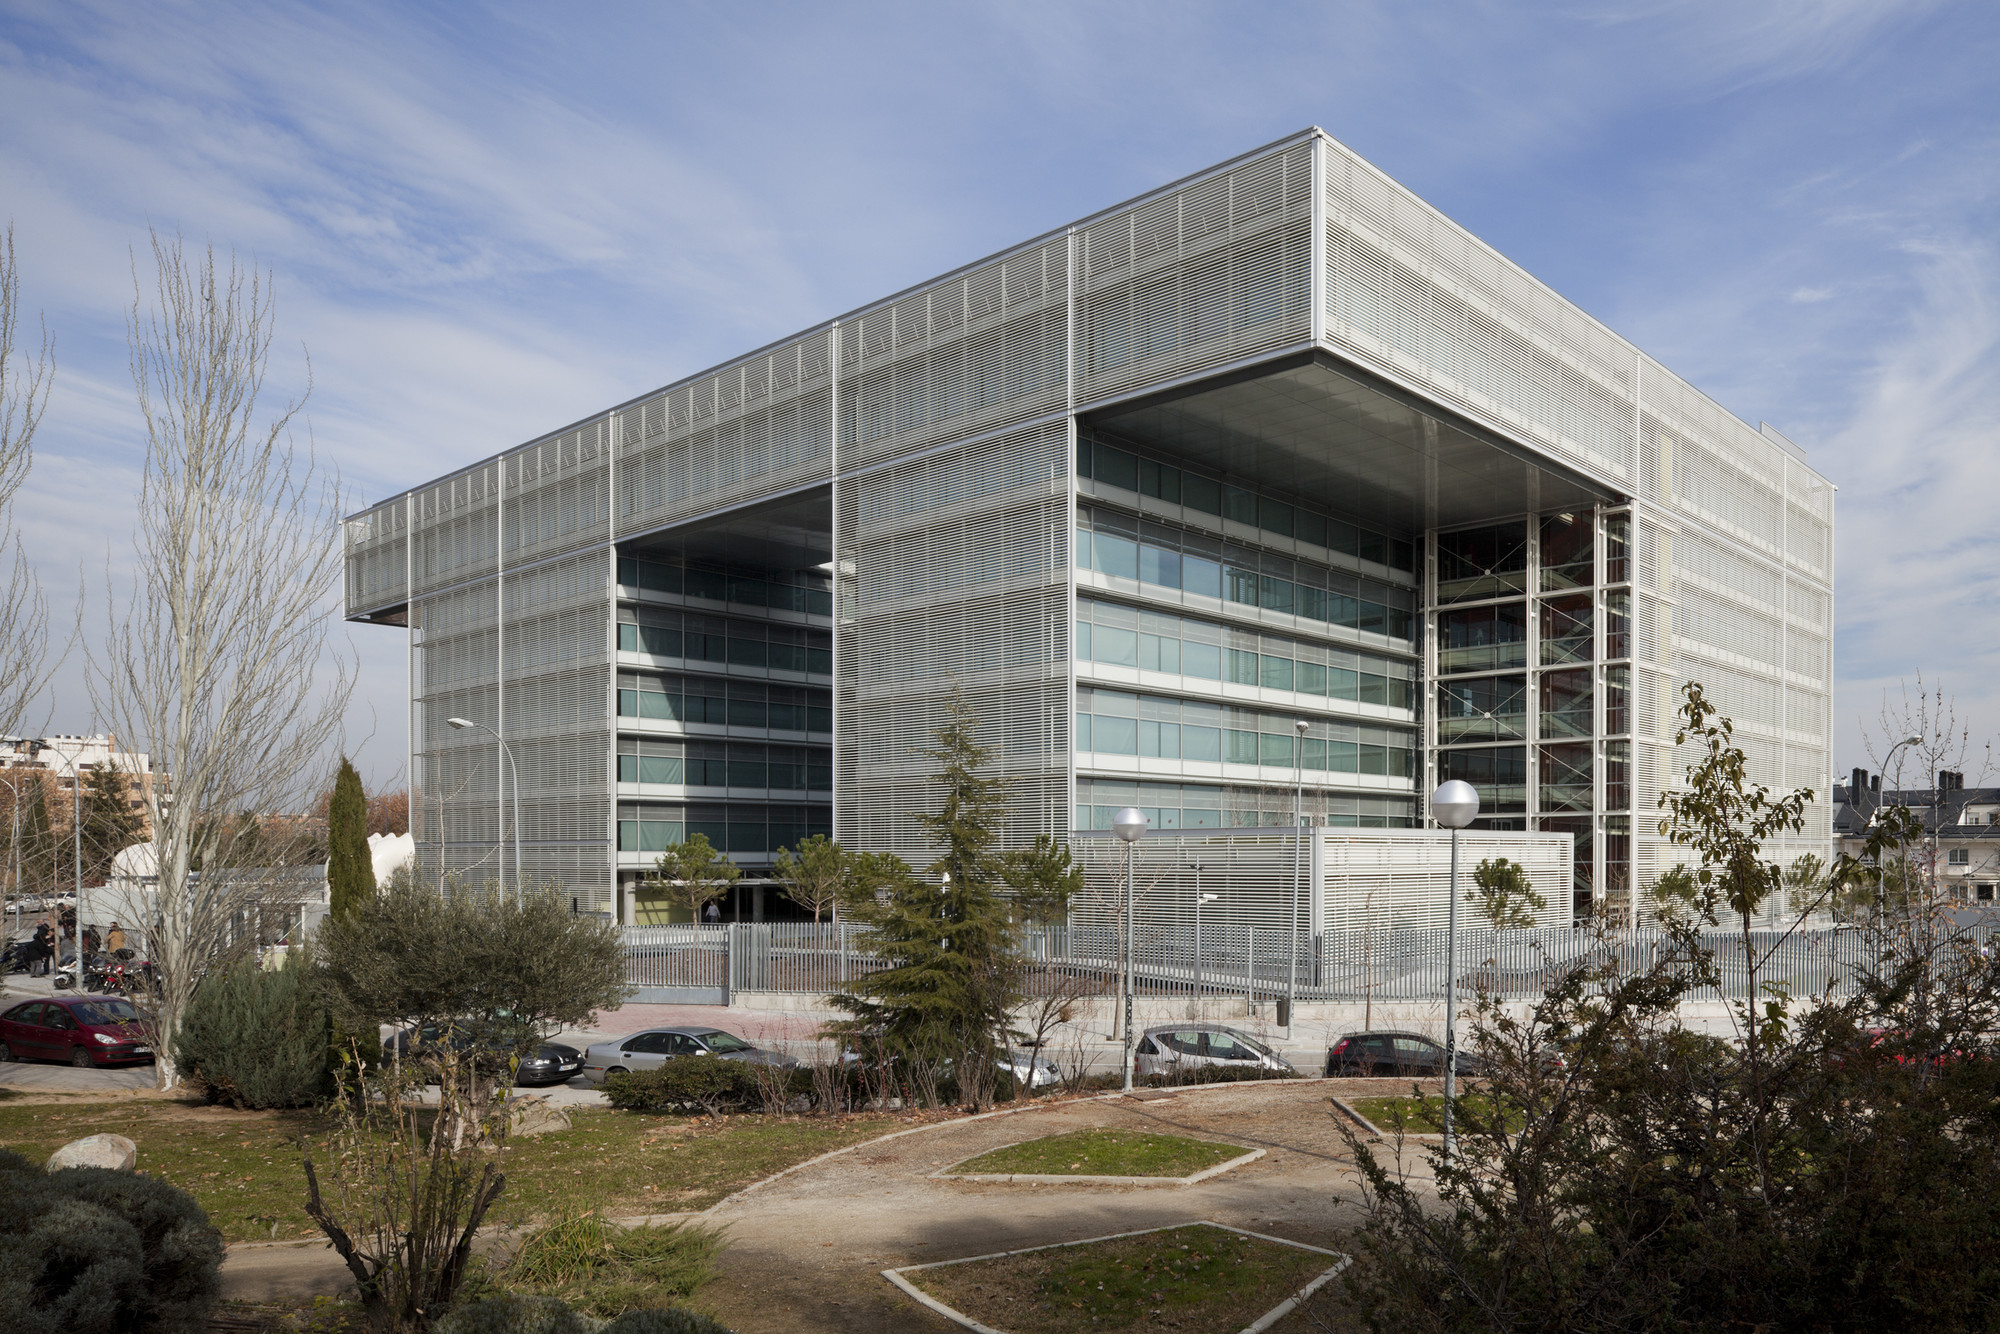 Nueva sede banco popular arquitectos ayala for Banco popular e oficinas